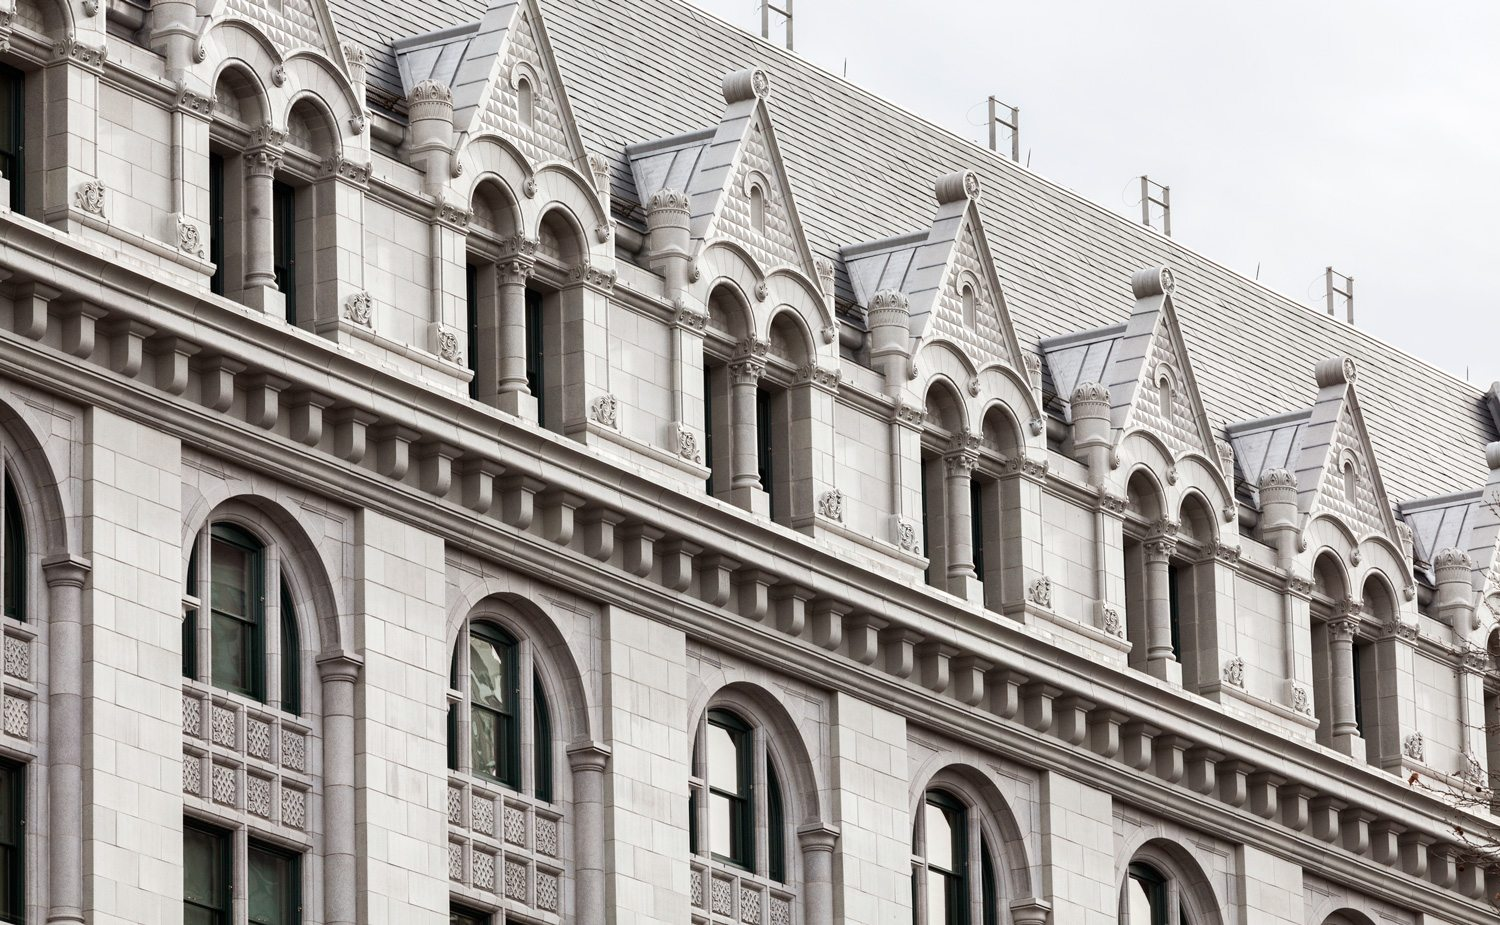 A detail shot of the upper portion and roof line of the Conrad B. Dubenstein U.S. Bankruptcy Courthouse in New York City. An award winning architectural terra cotta restoration utilizing hand press, RAM press and extrusion forming method to recreate over 17,000 terra cotta facade pieces.